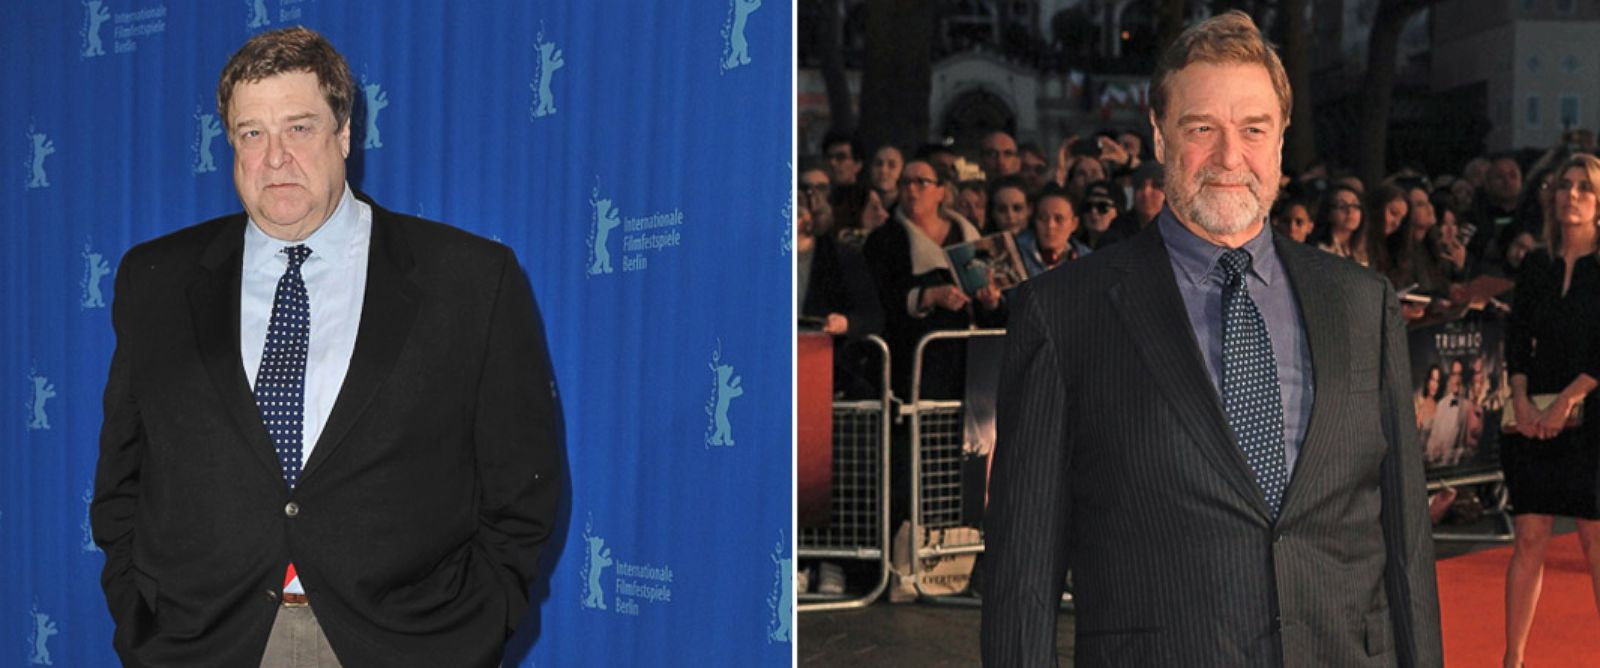 PHOTO: Before and after images of actor John Goodman on Feb. 7, 2009 in Berlin and again on Oct. 8, 2015 in London.